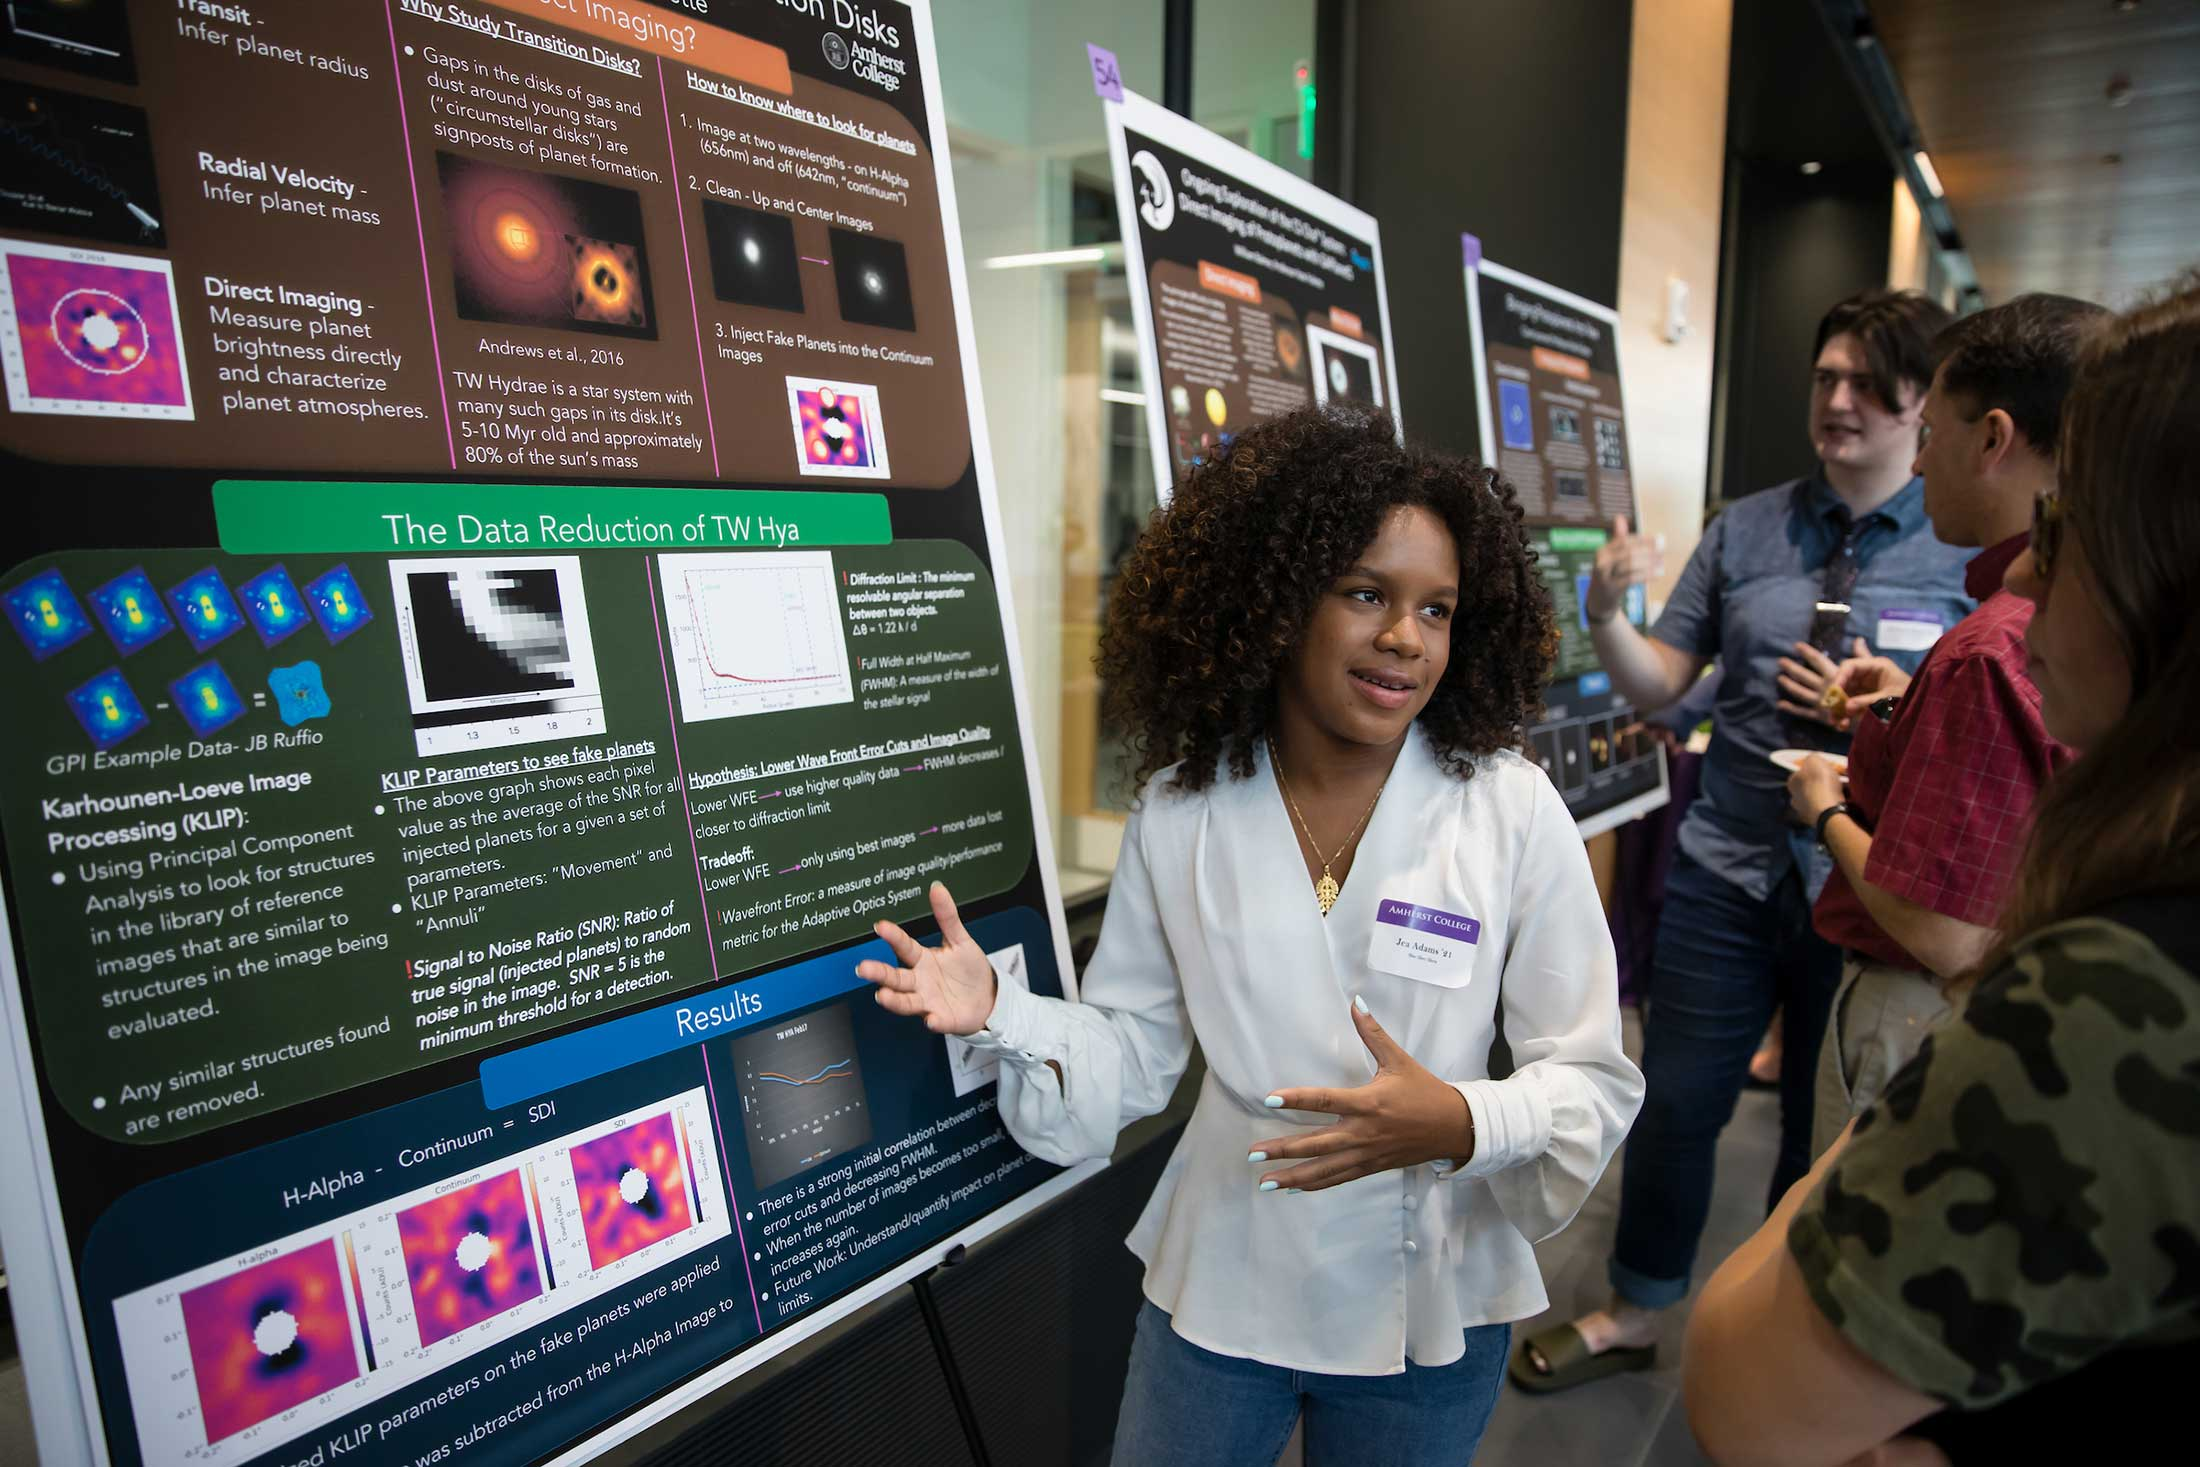 A student describes her summer research which is illustrated on a large poster